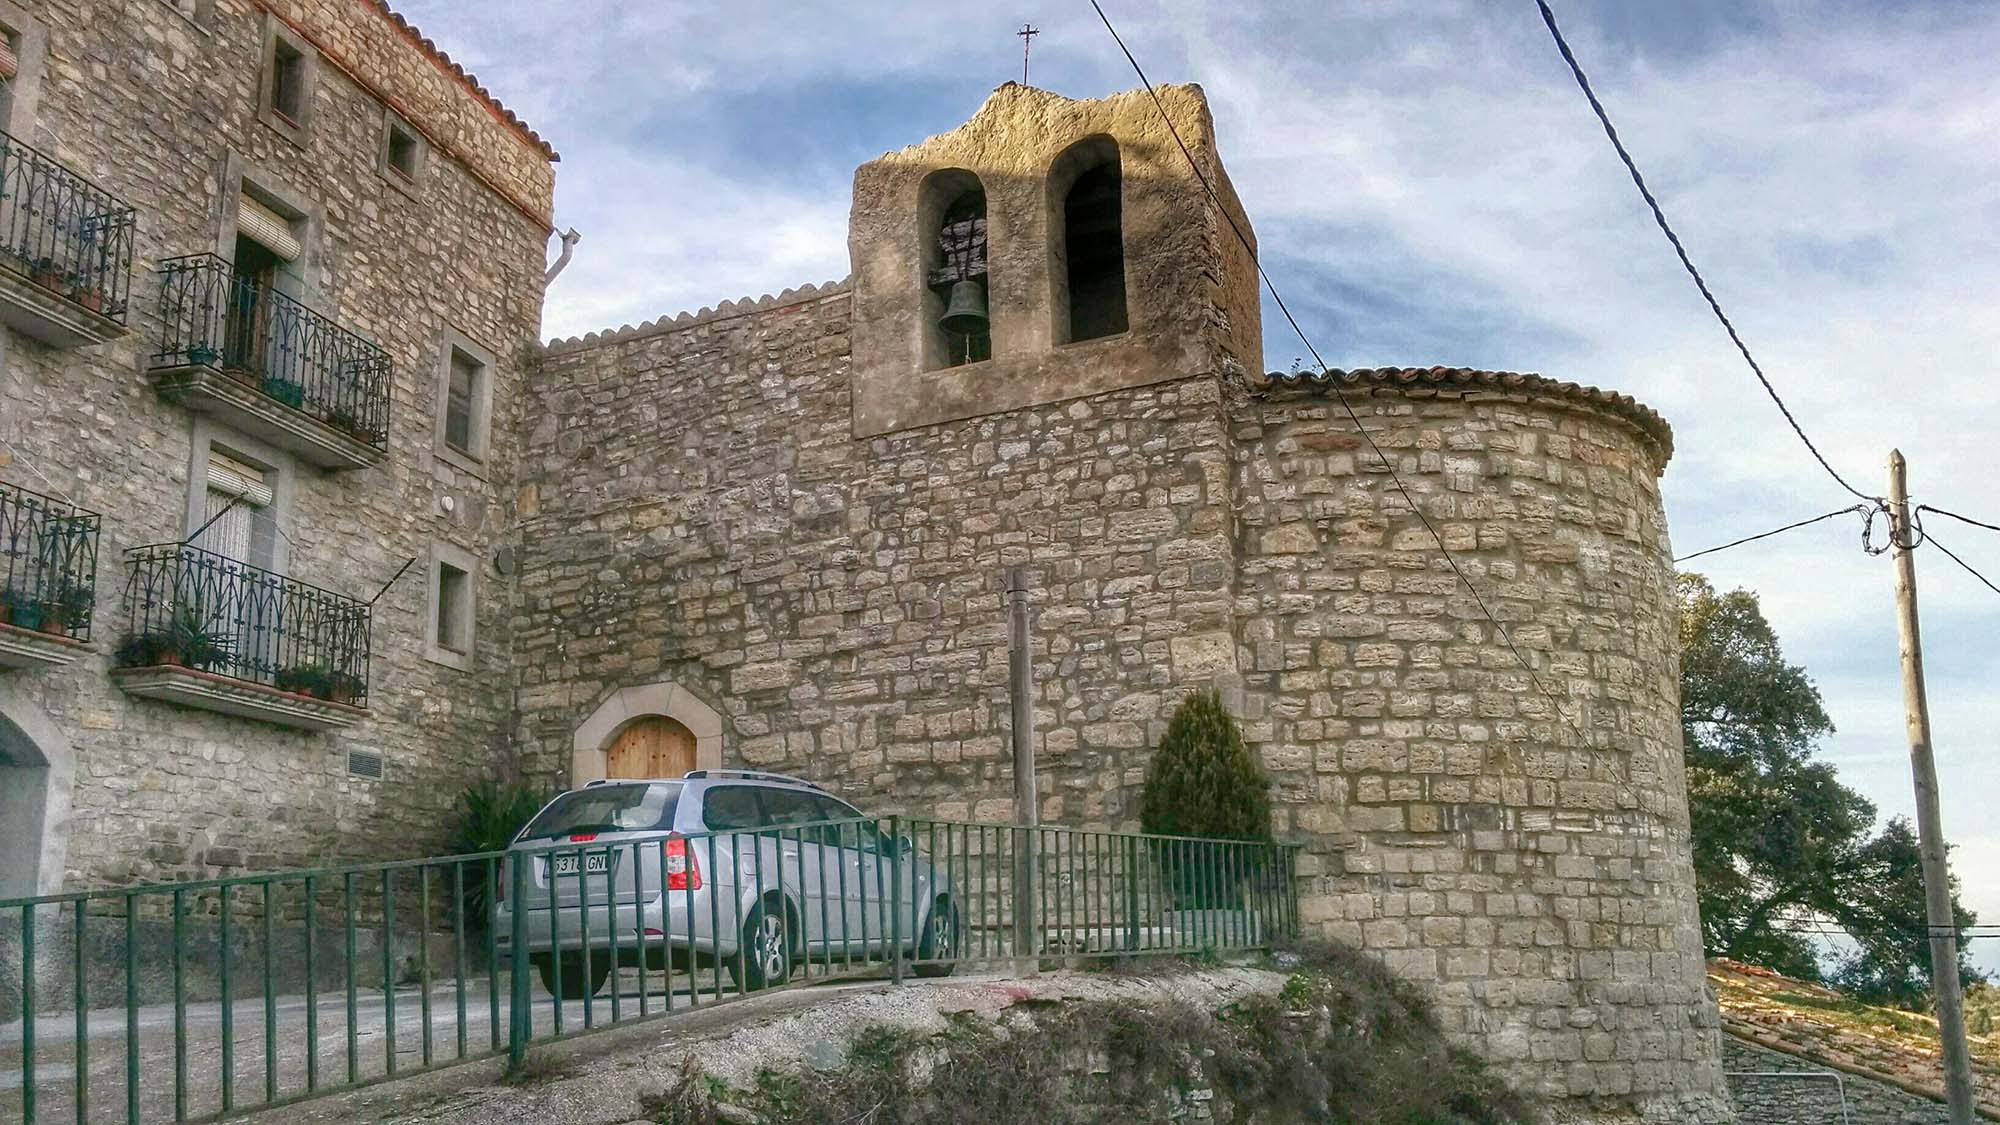 Church Santa Creu